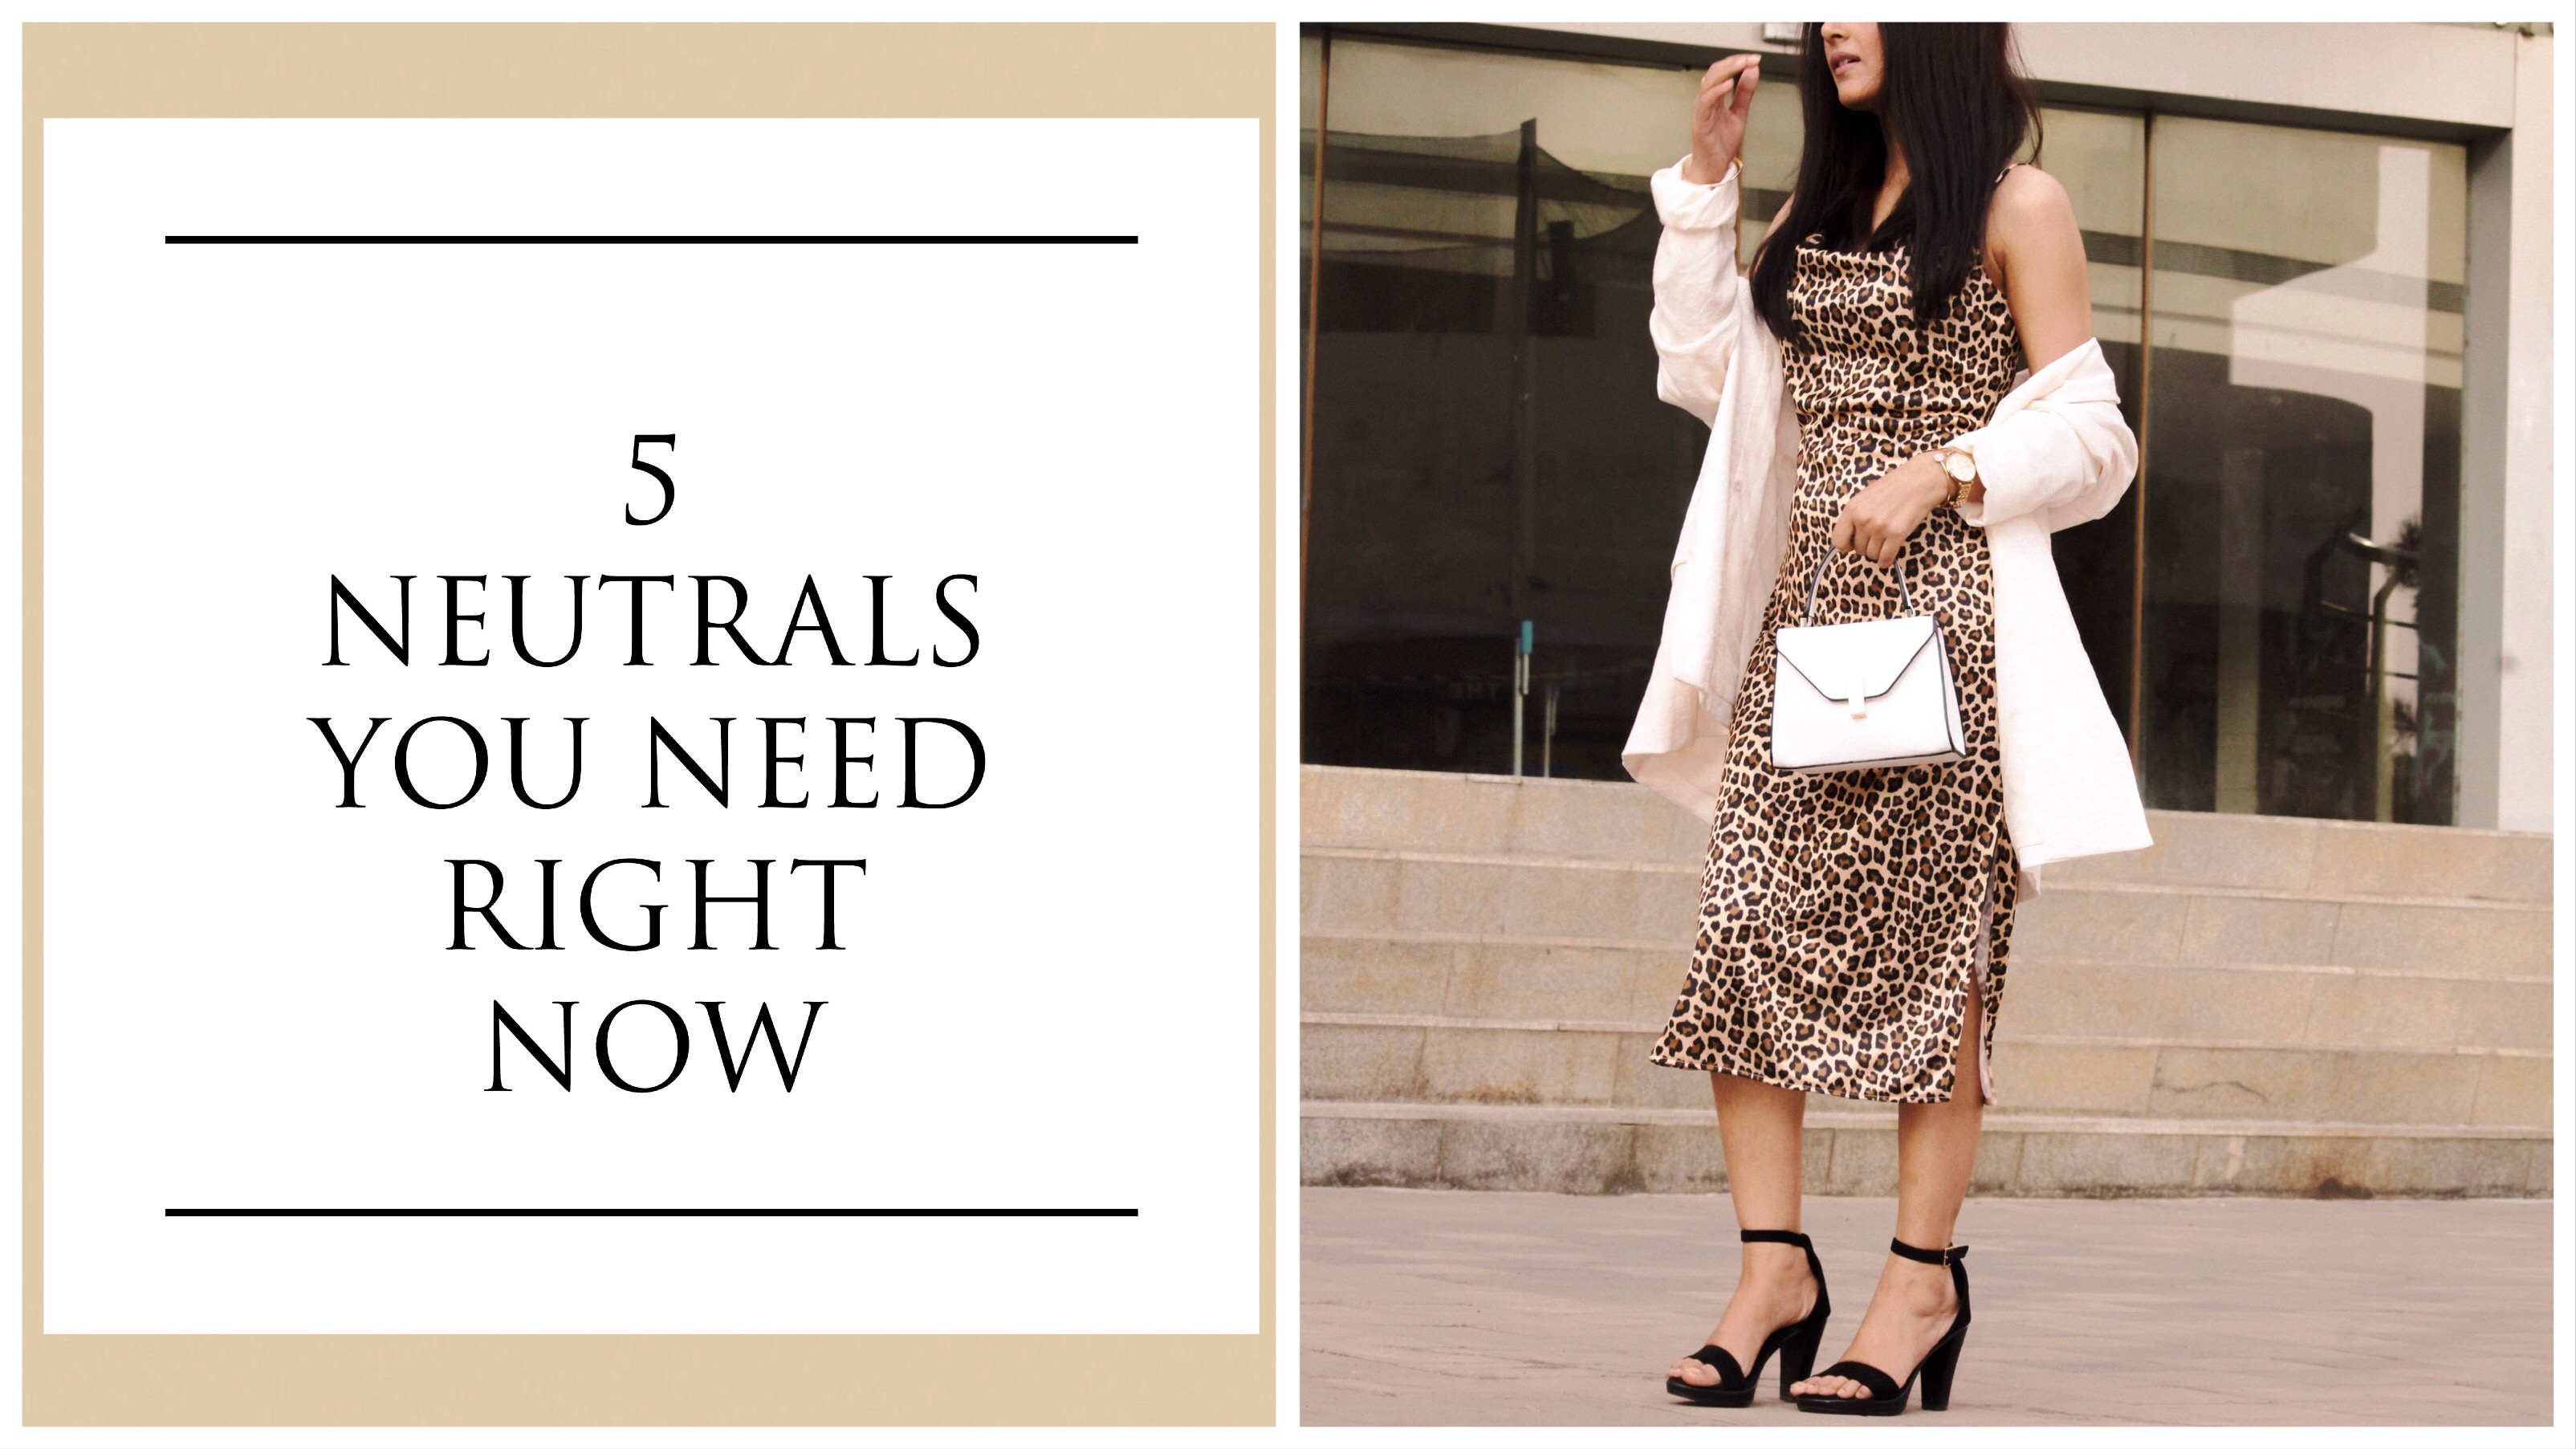 5 Neutrals you need right now